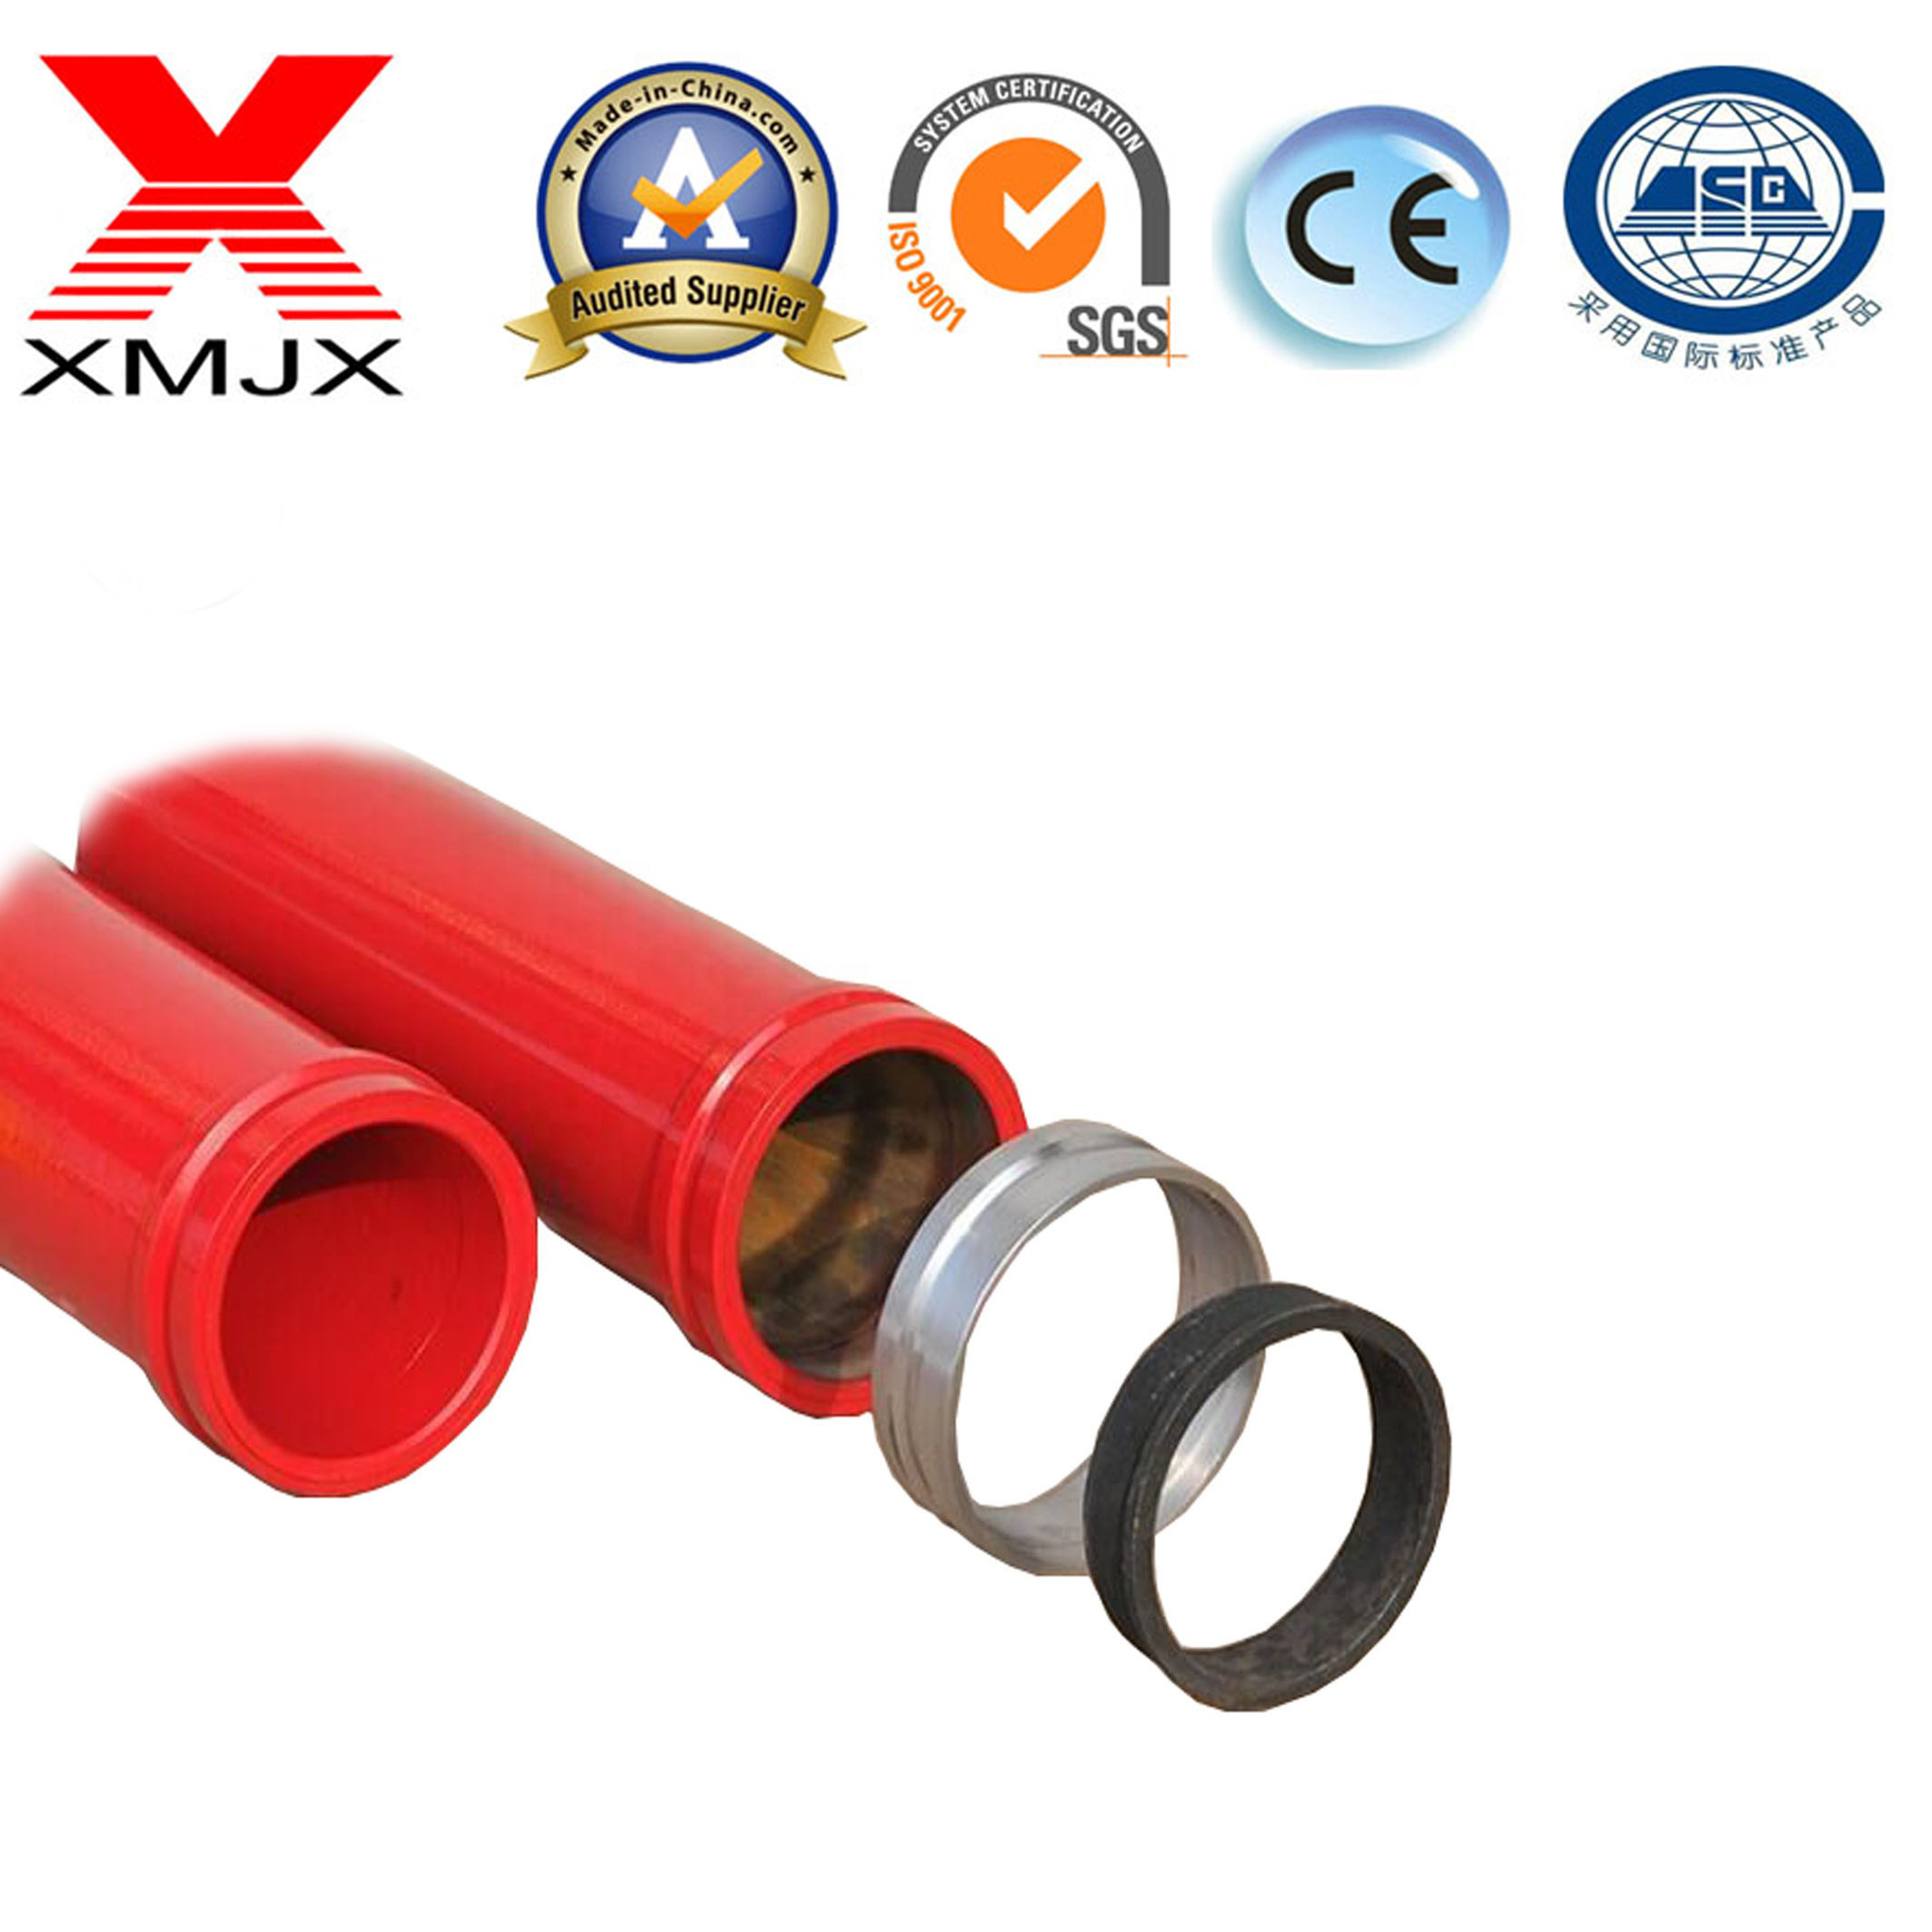 2020 Hot Sale Competitive Top Quality Concrete Pump Pipe in Ximai Machinery